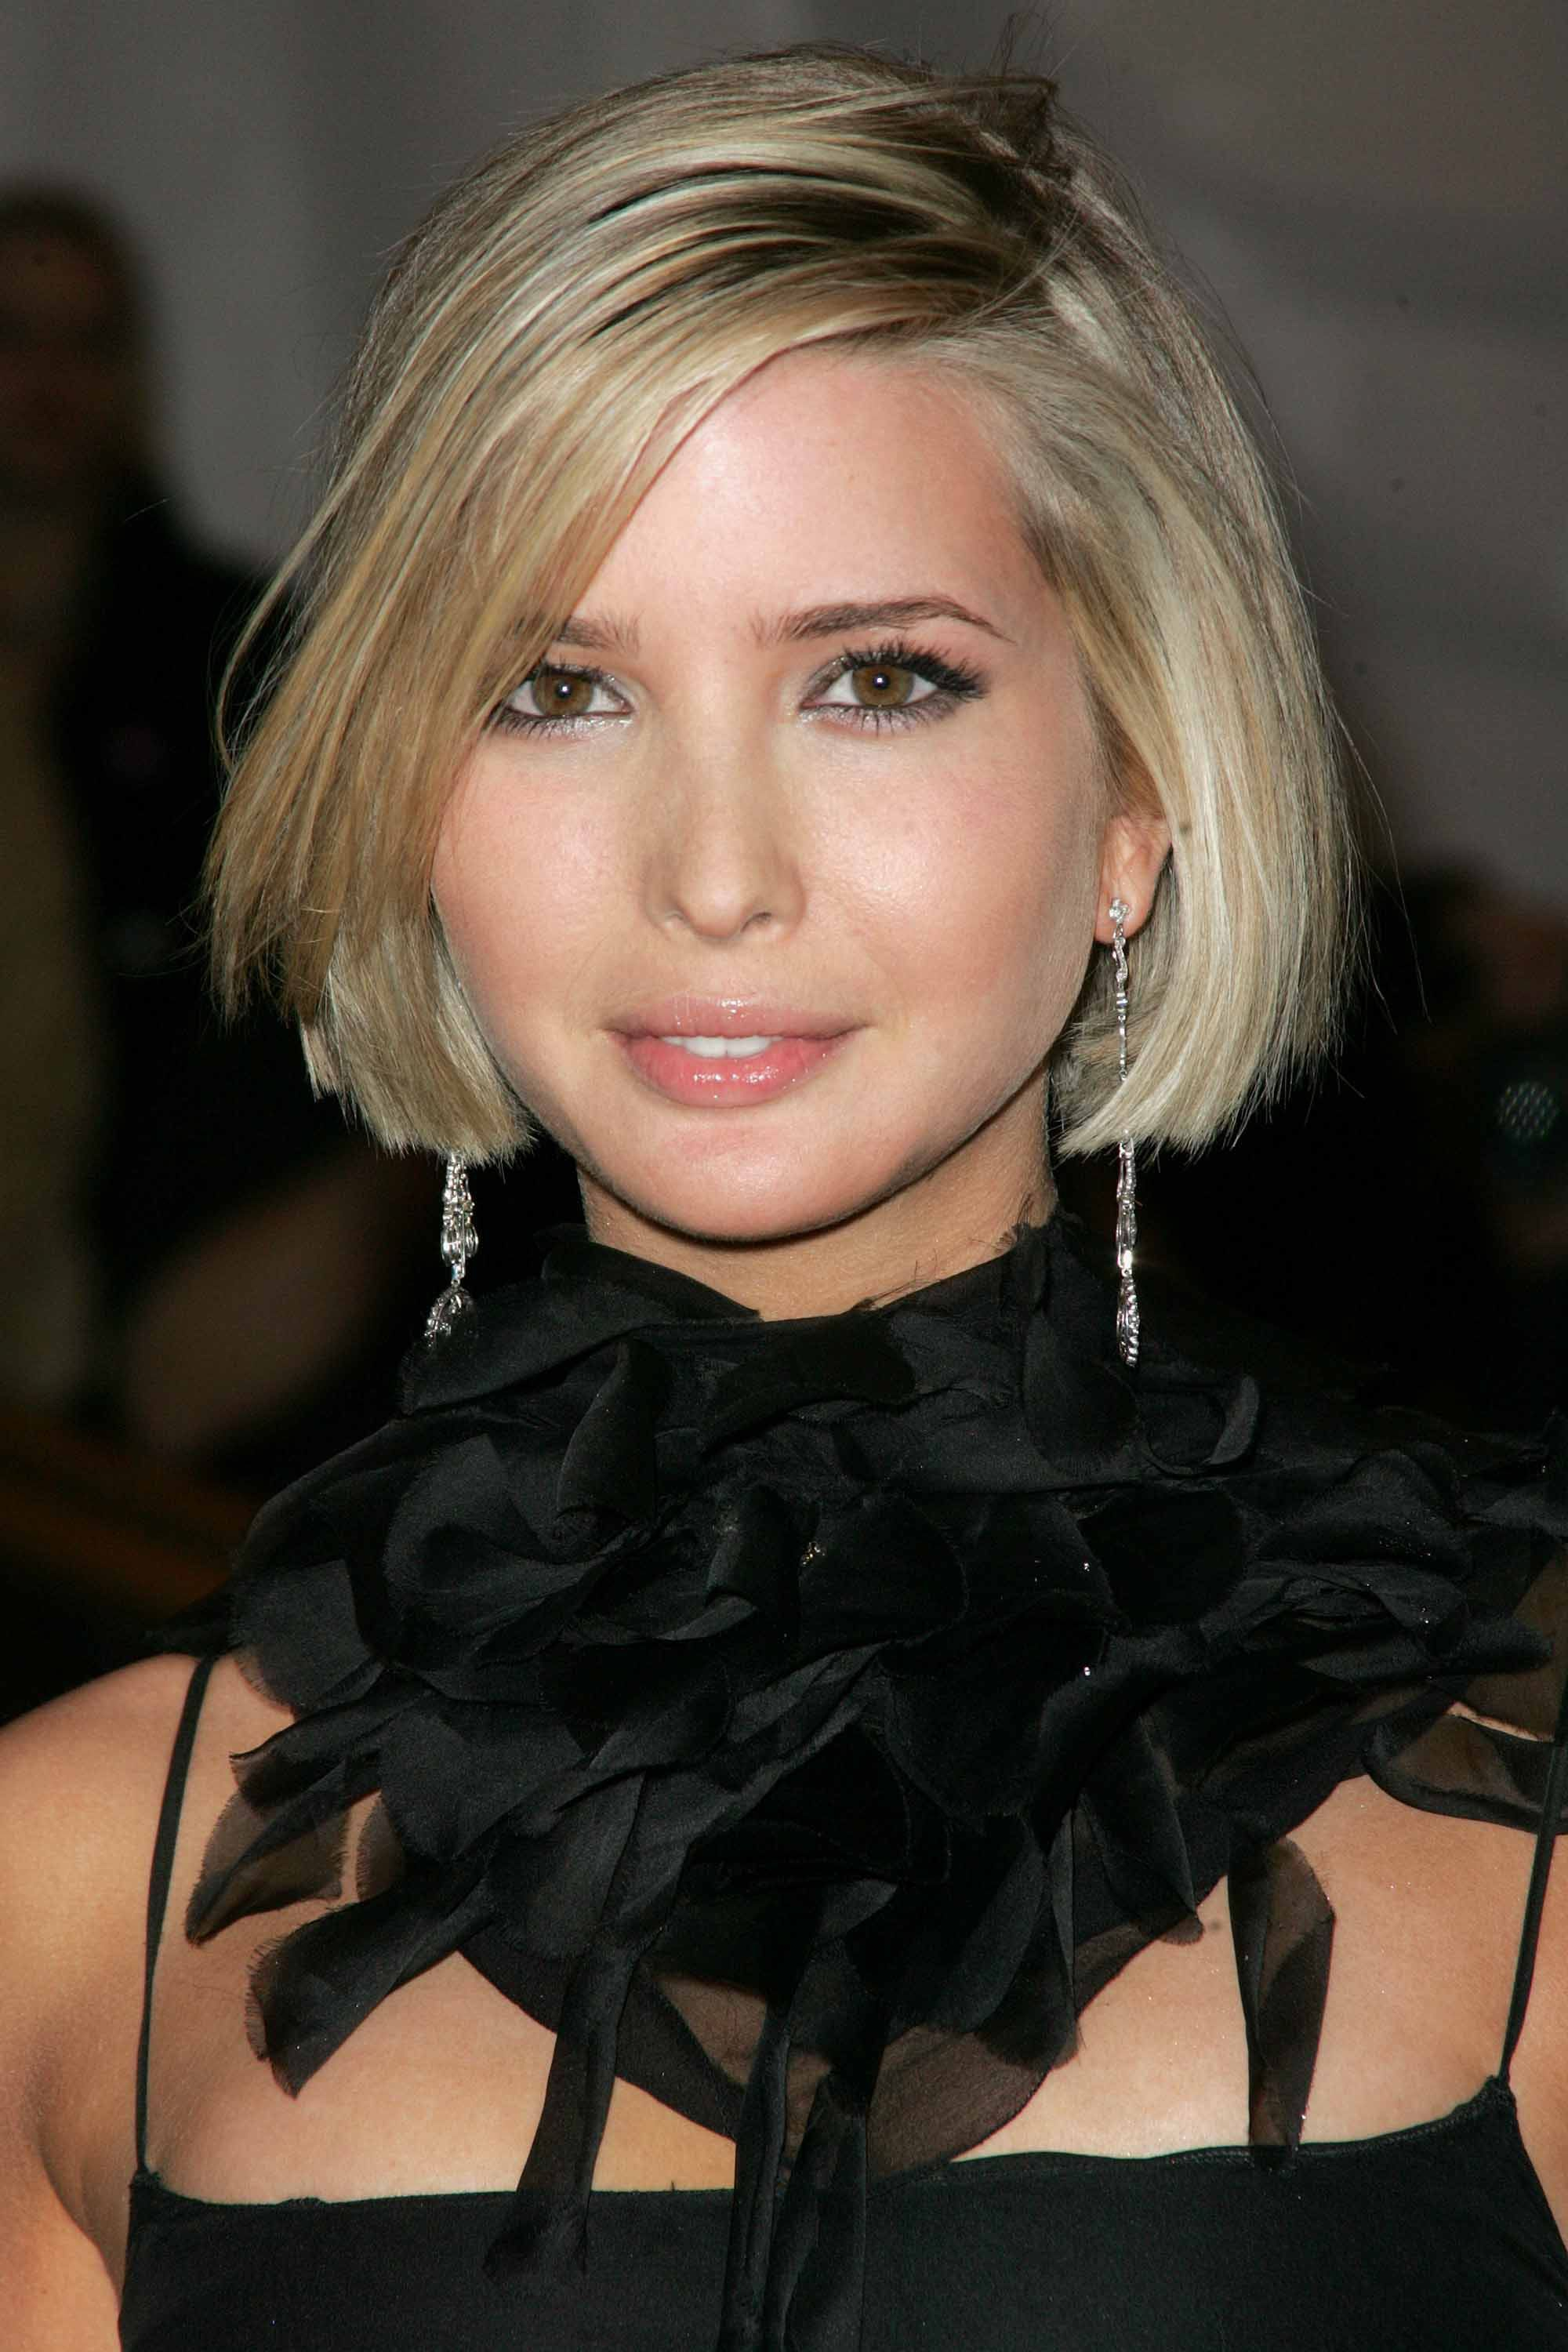 photos of new hair style ivanka yahoo image search results ivanka 7179